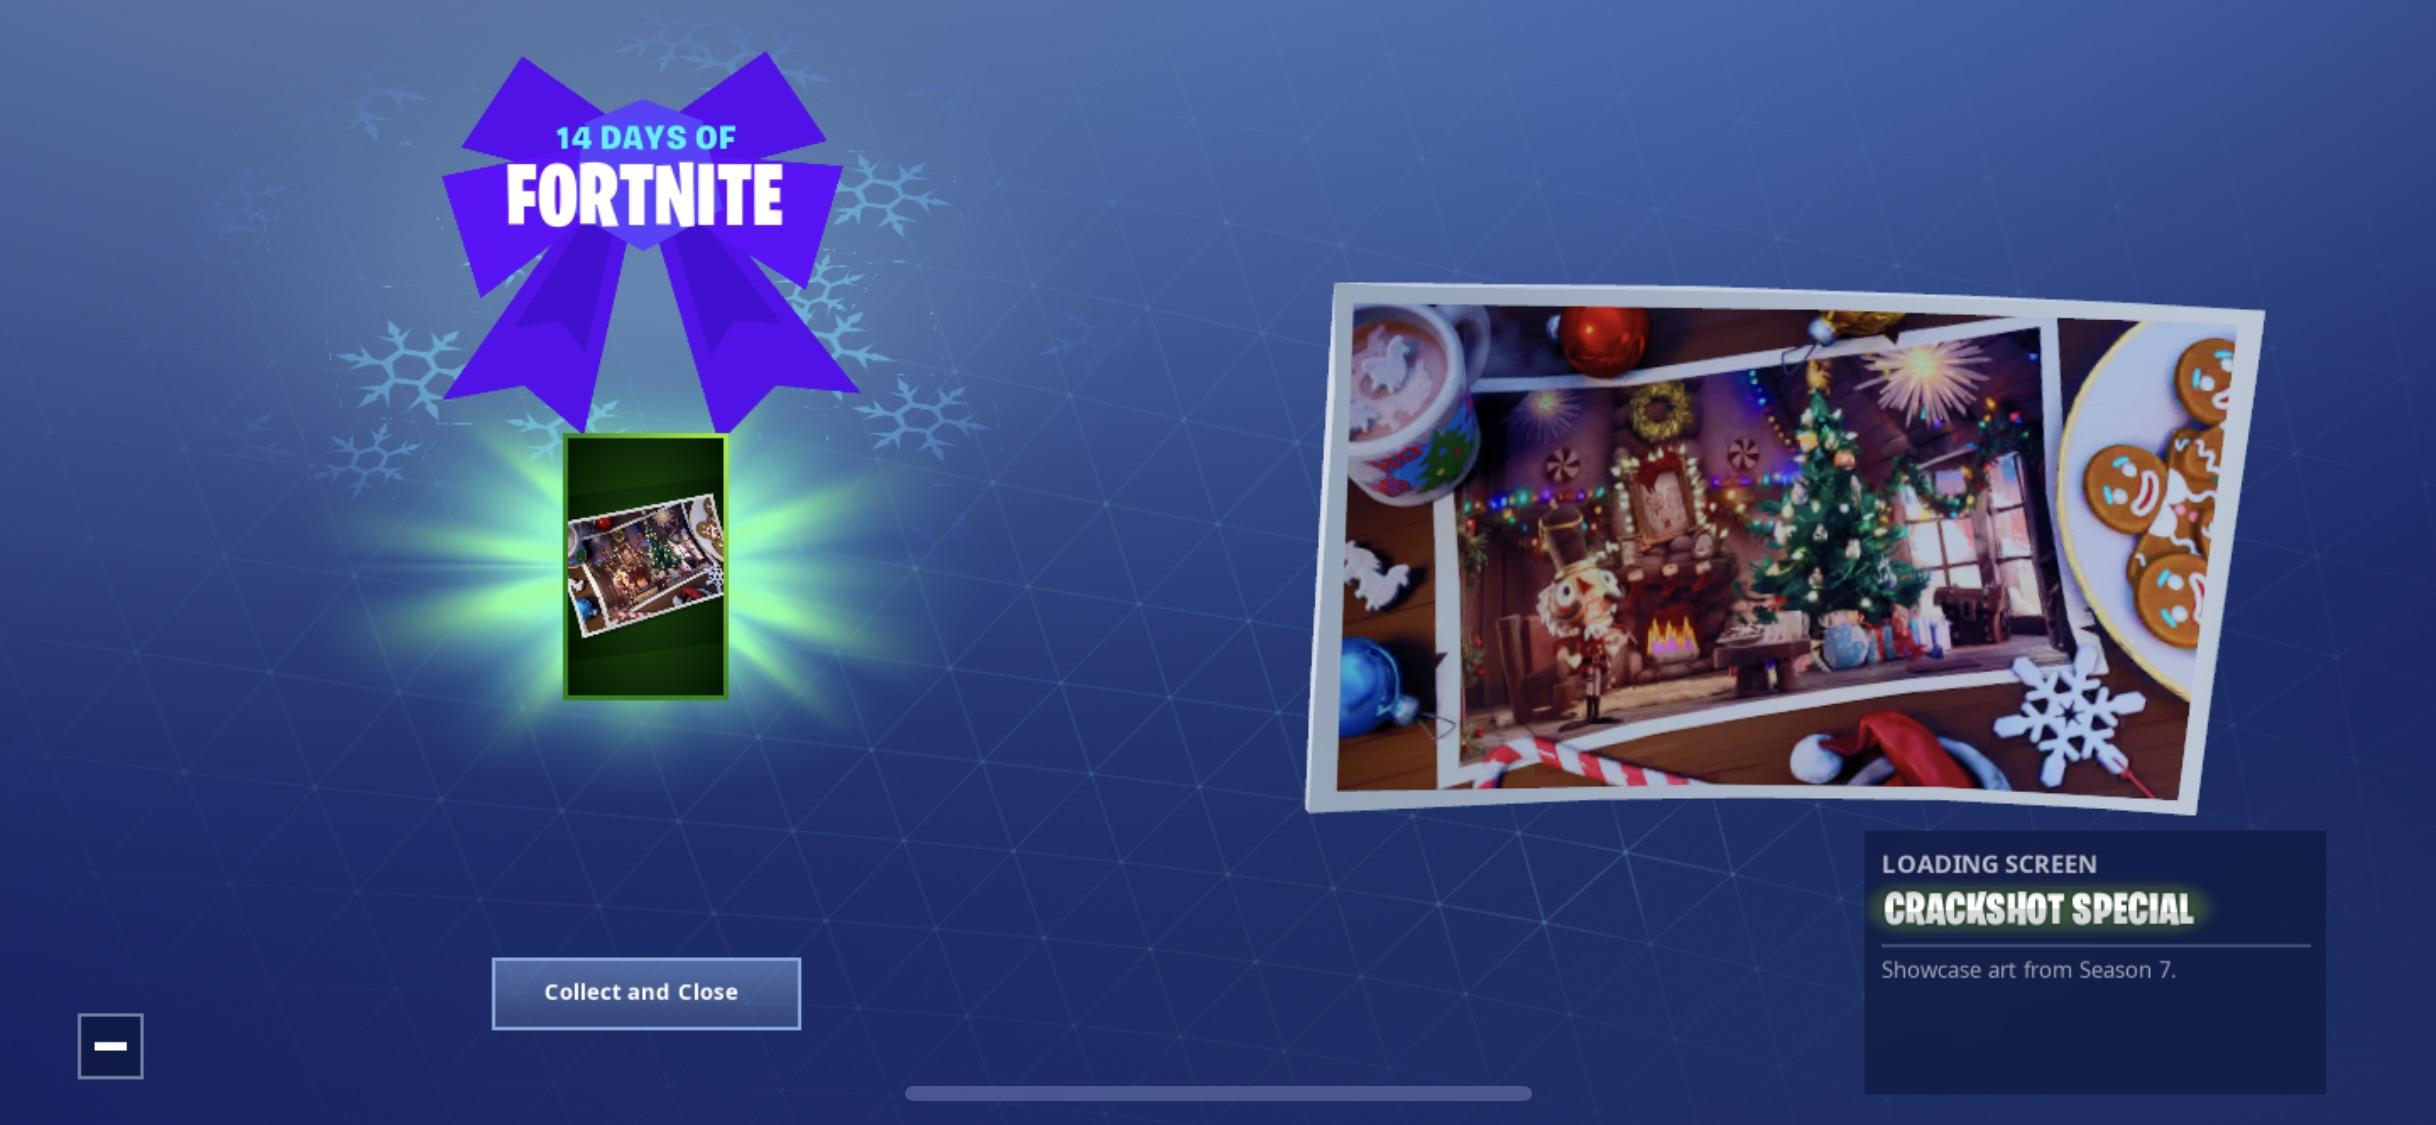 14 Days of Fortnite Reward - Day 6